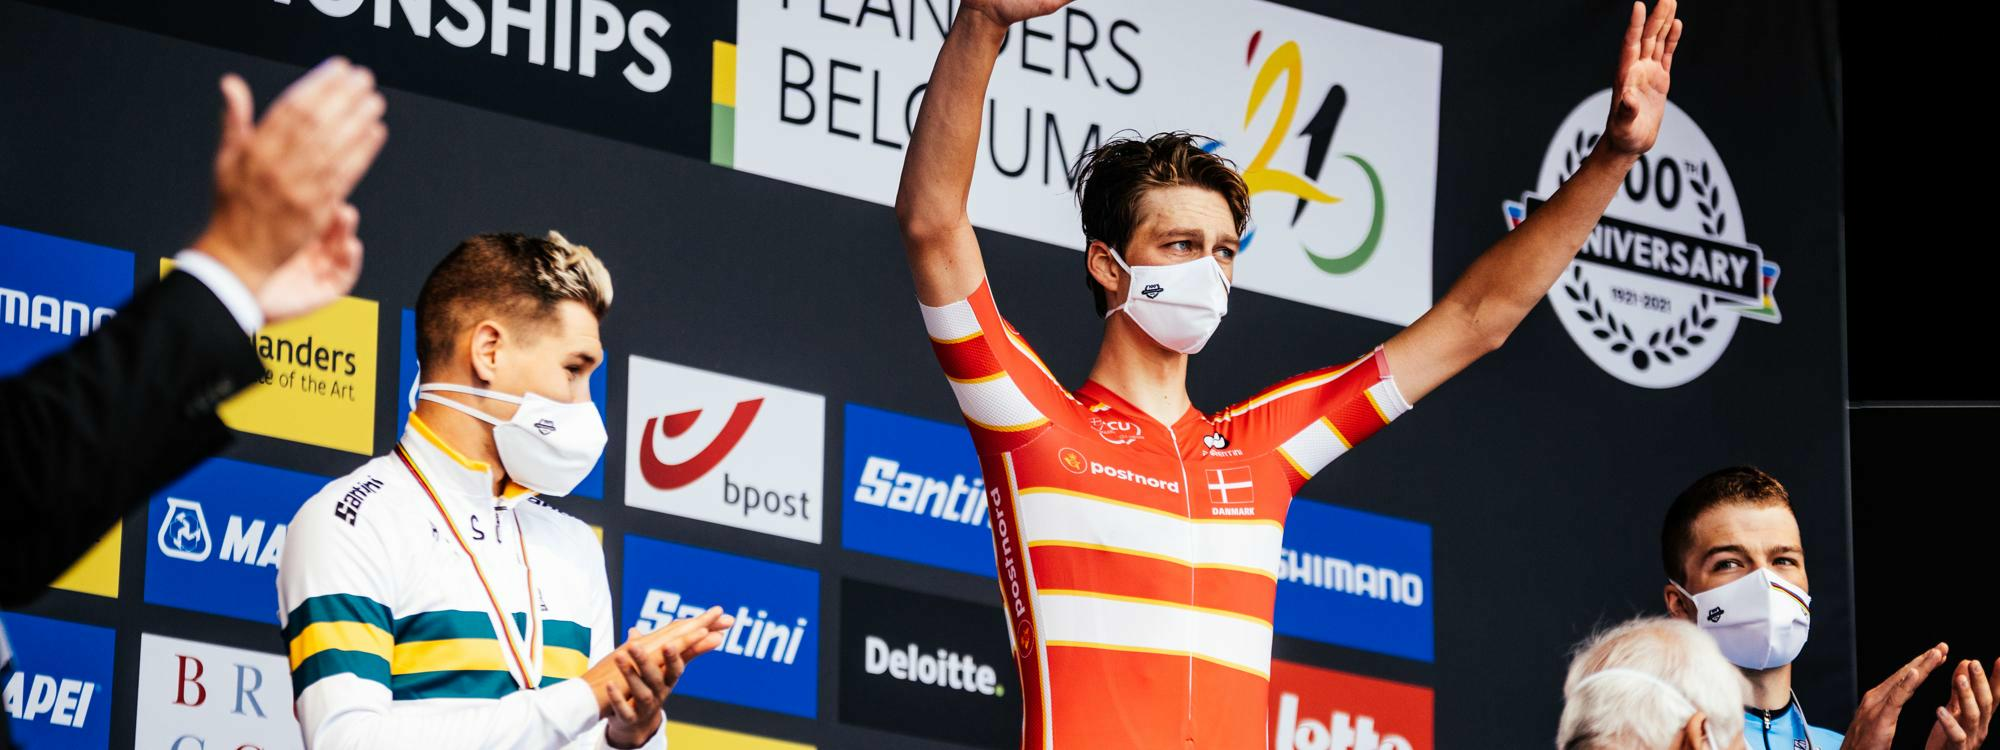 Price-Pejtersen now also UCI Road World Champion after European Championship win